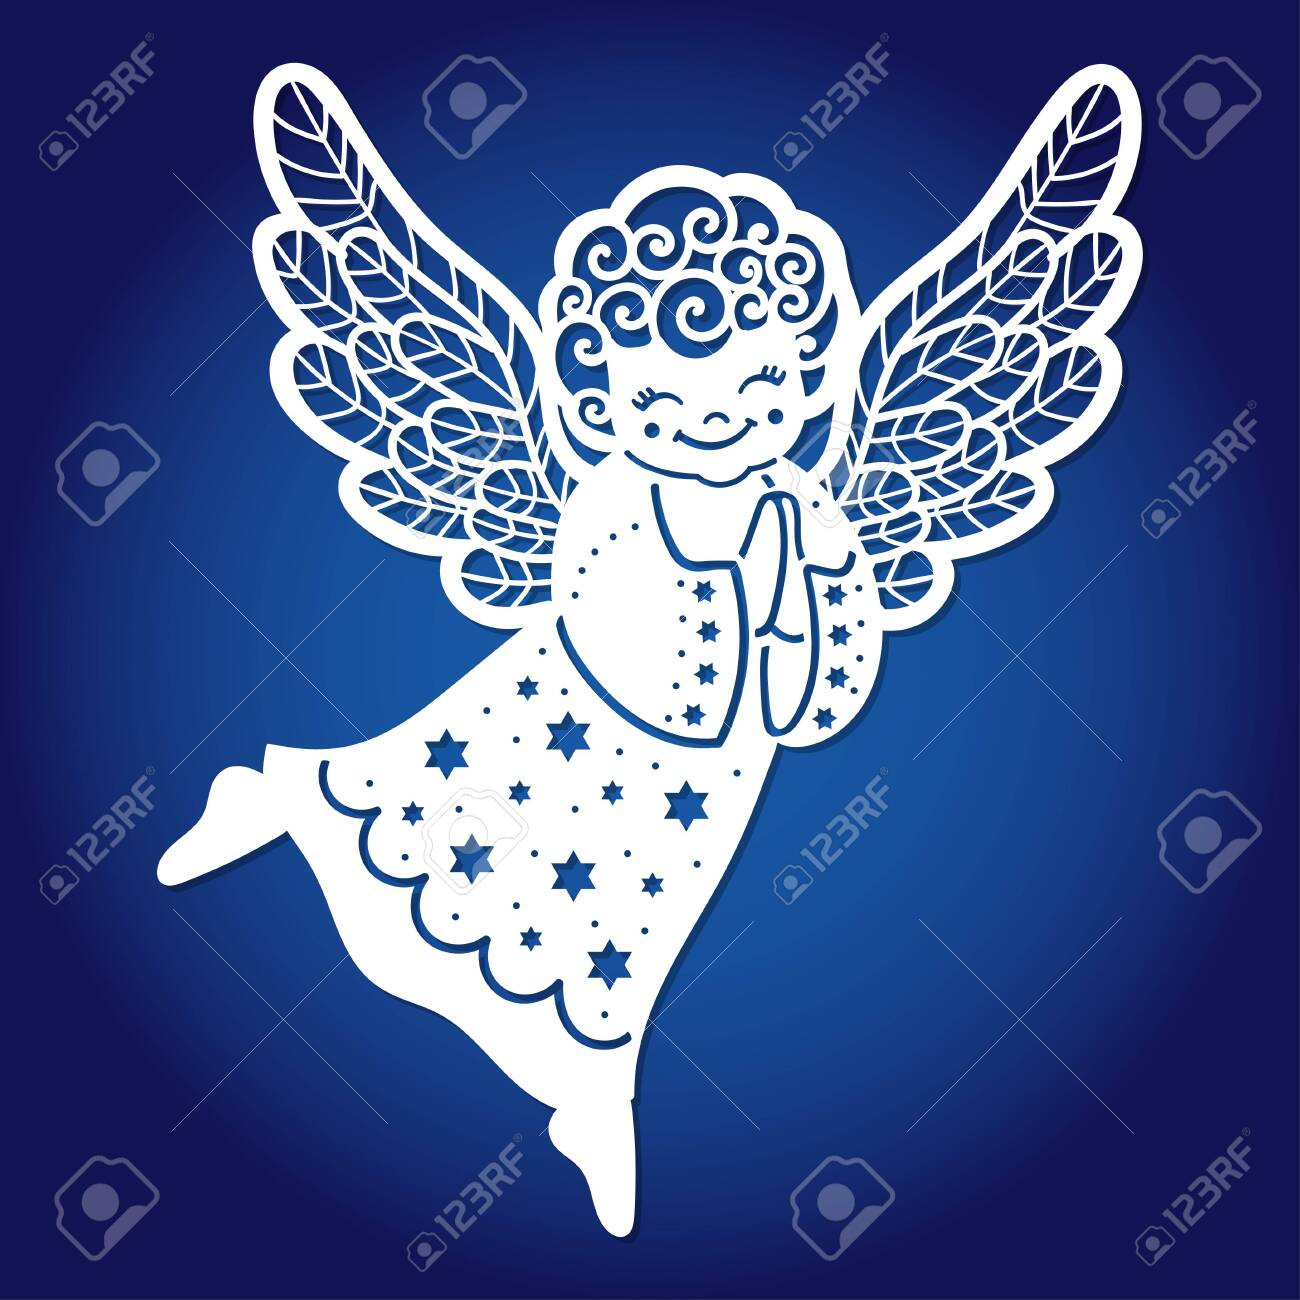 Template for laser cutting. Sweet little angel. For cutting from any material. For the design of greeting cards, envelopes, menus, Christmas tree decorations, interior elements. Vector - 155478120